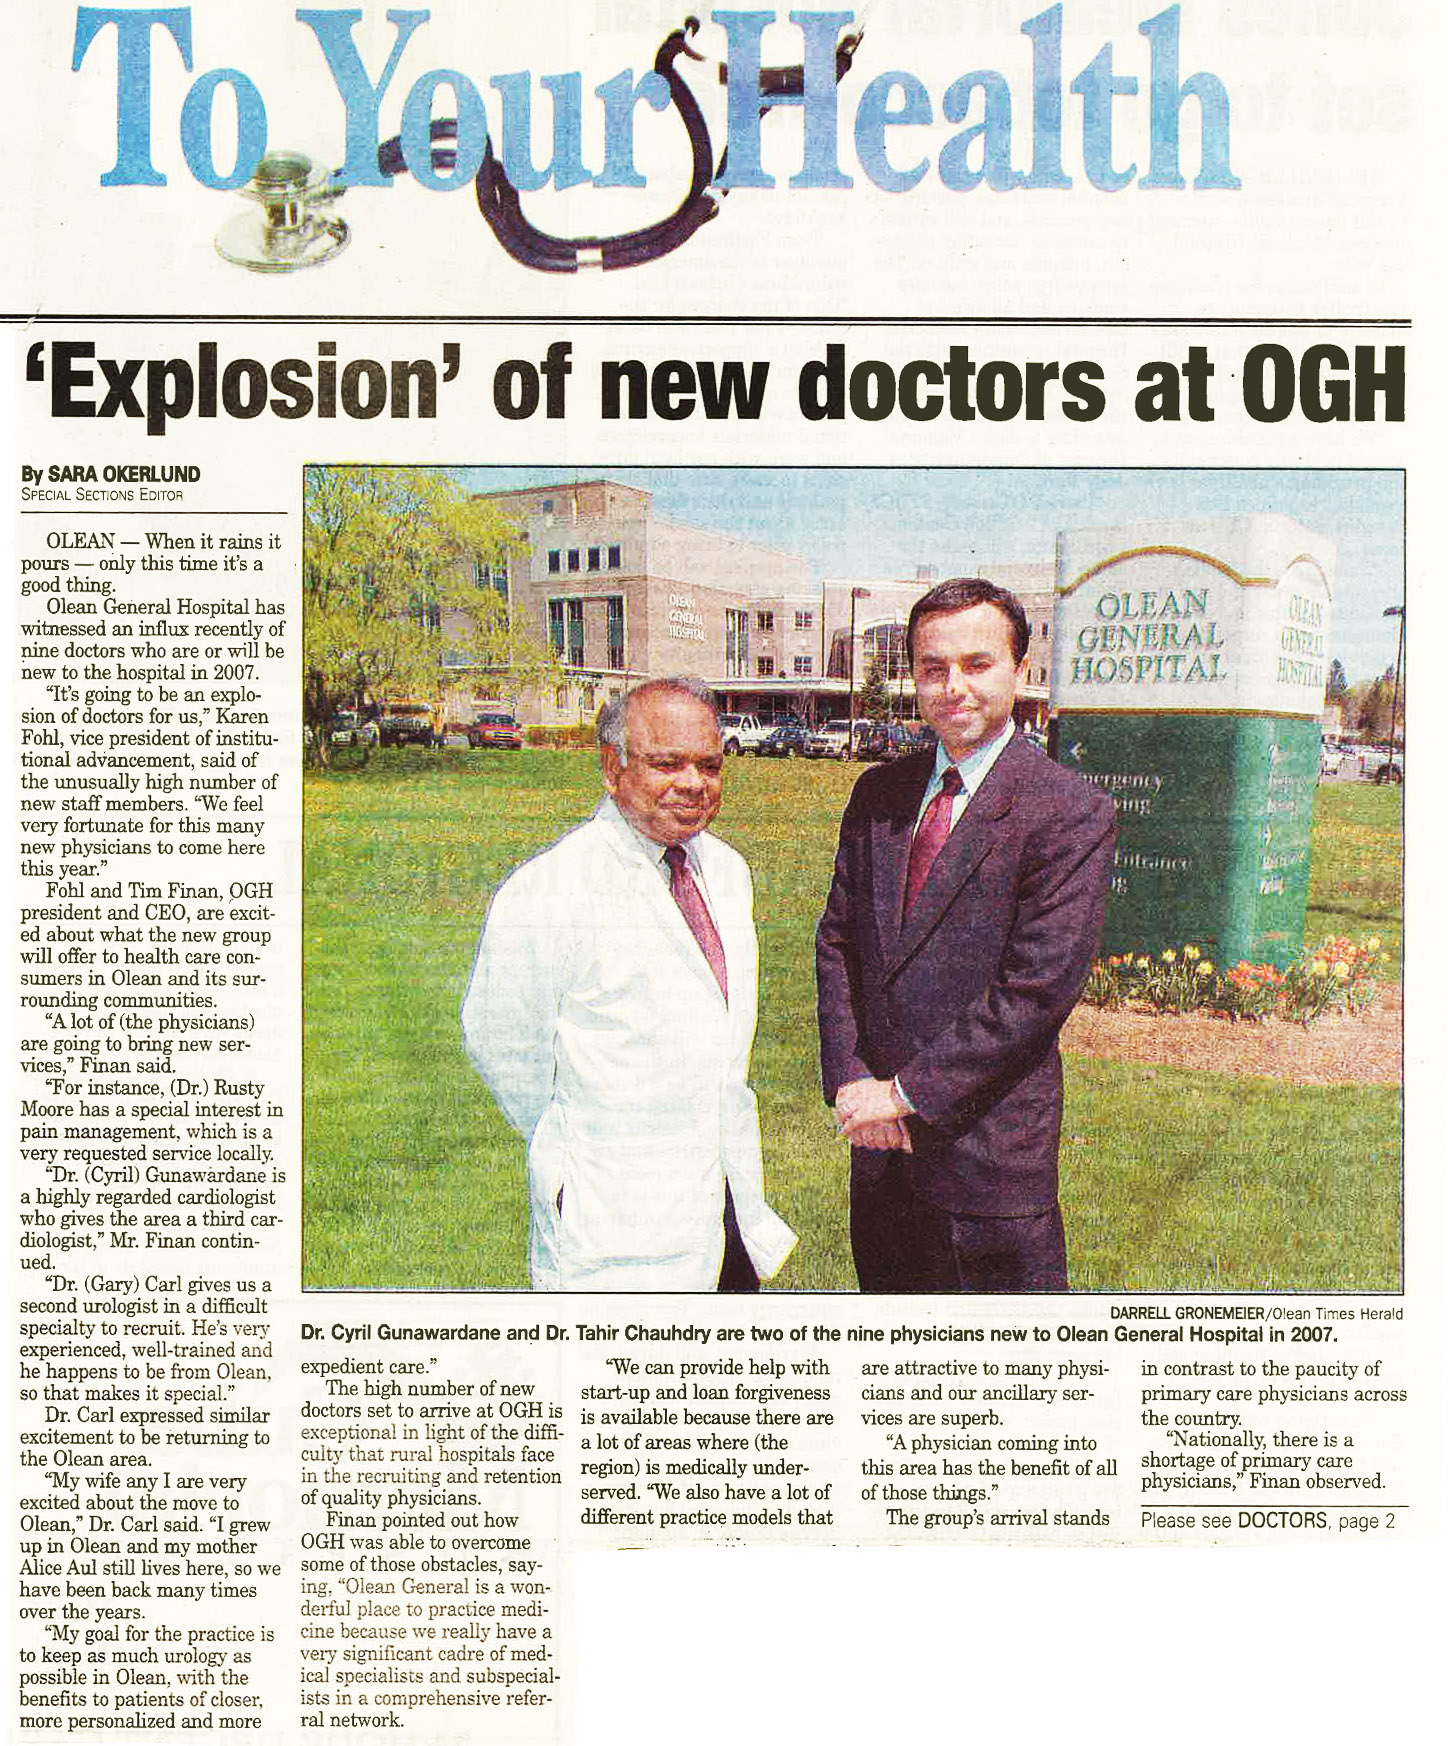 Explosion of New Doctors at OGH